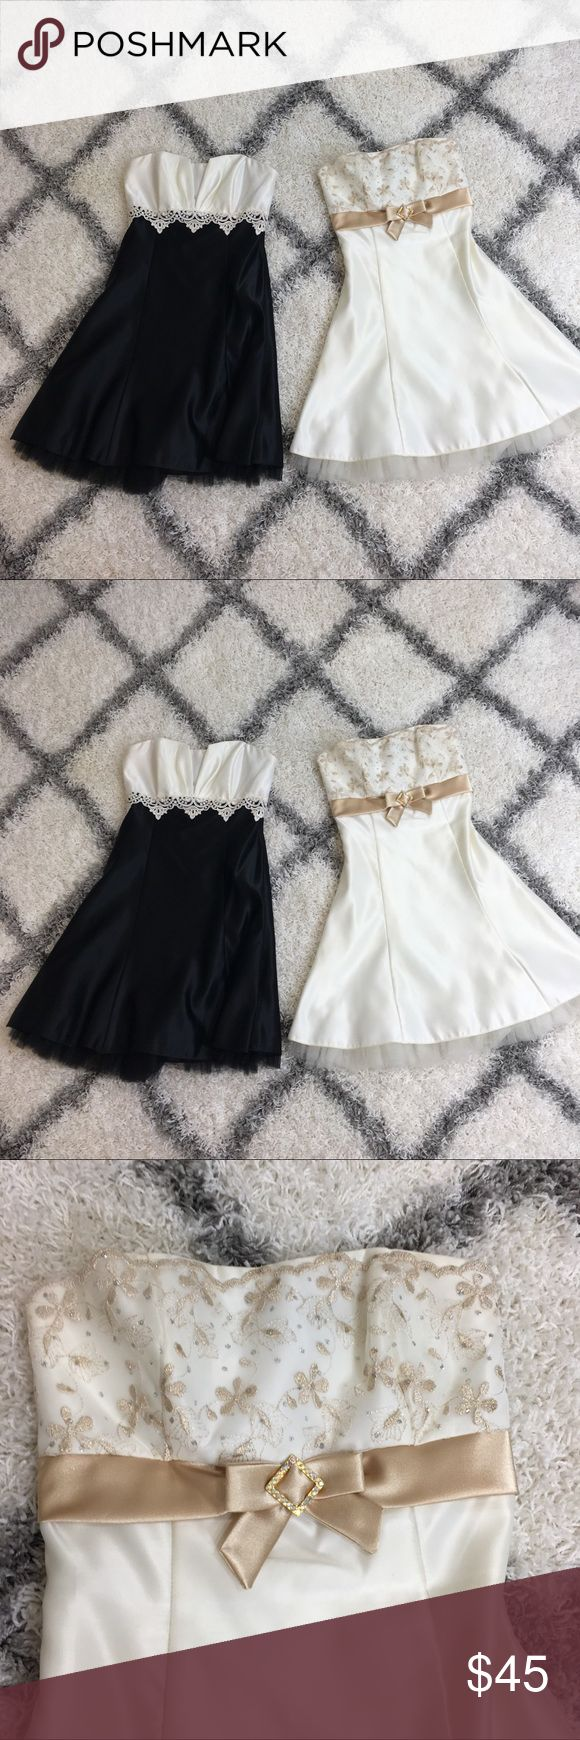 (Jessica McClintock) Strapless Dress Bundle Strapless dress bundle. Only selling together. Both Jessica McClintock brand. One size 3 and one size 5. Both have light wear and will need to be dry cleaned. No trades  — HU CLST  #bundle #strapless #prom Jessica McClintock Dresses Strapless